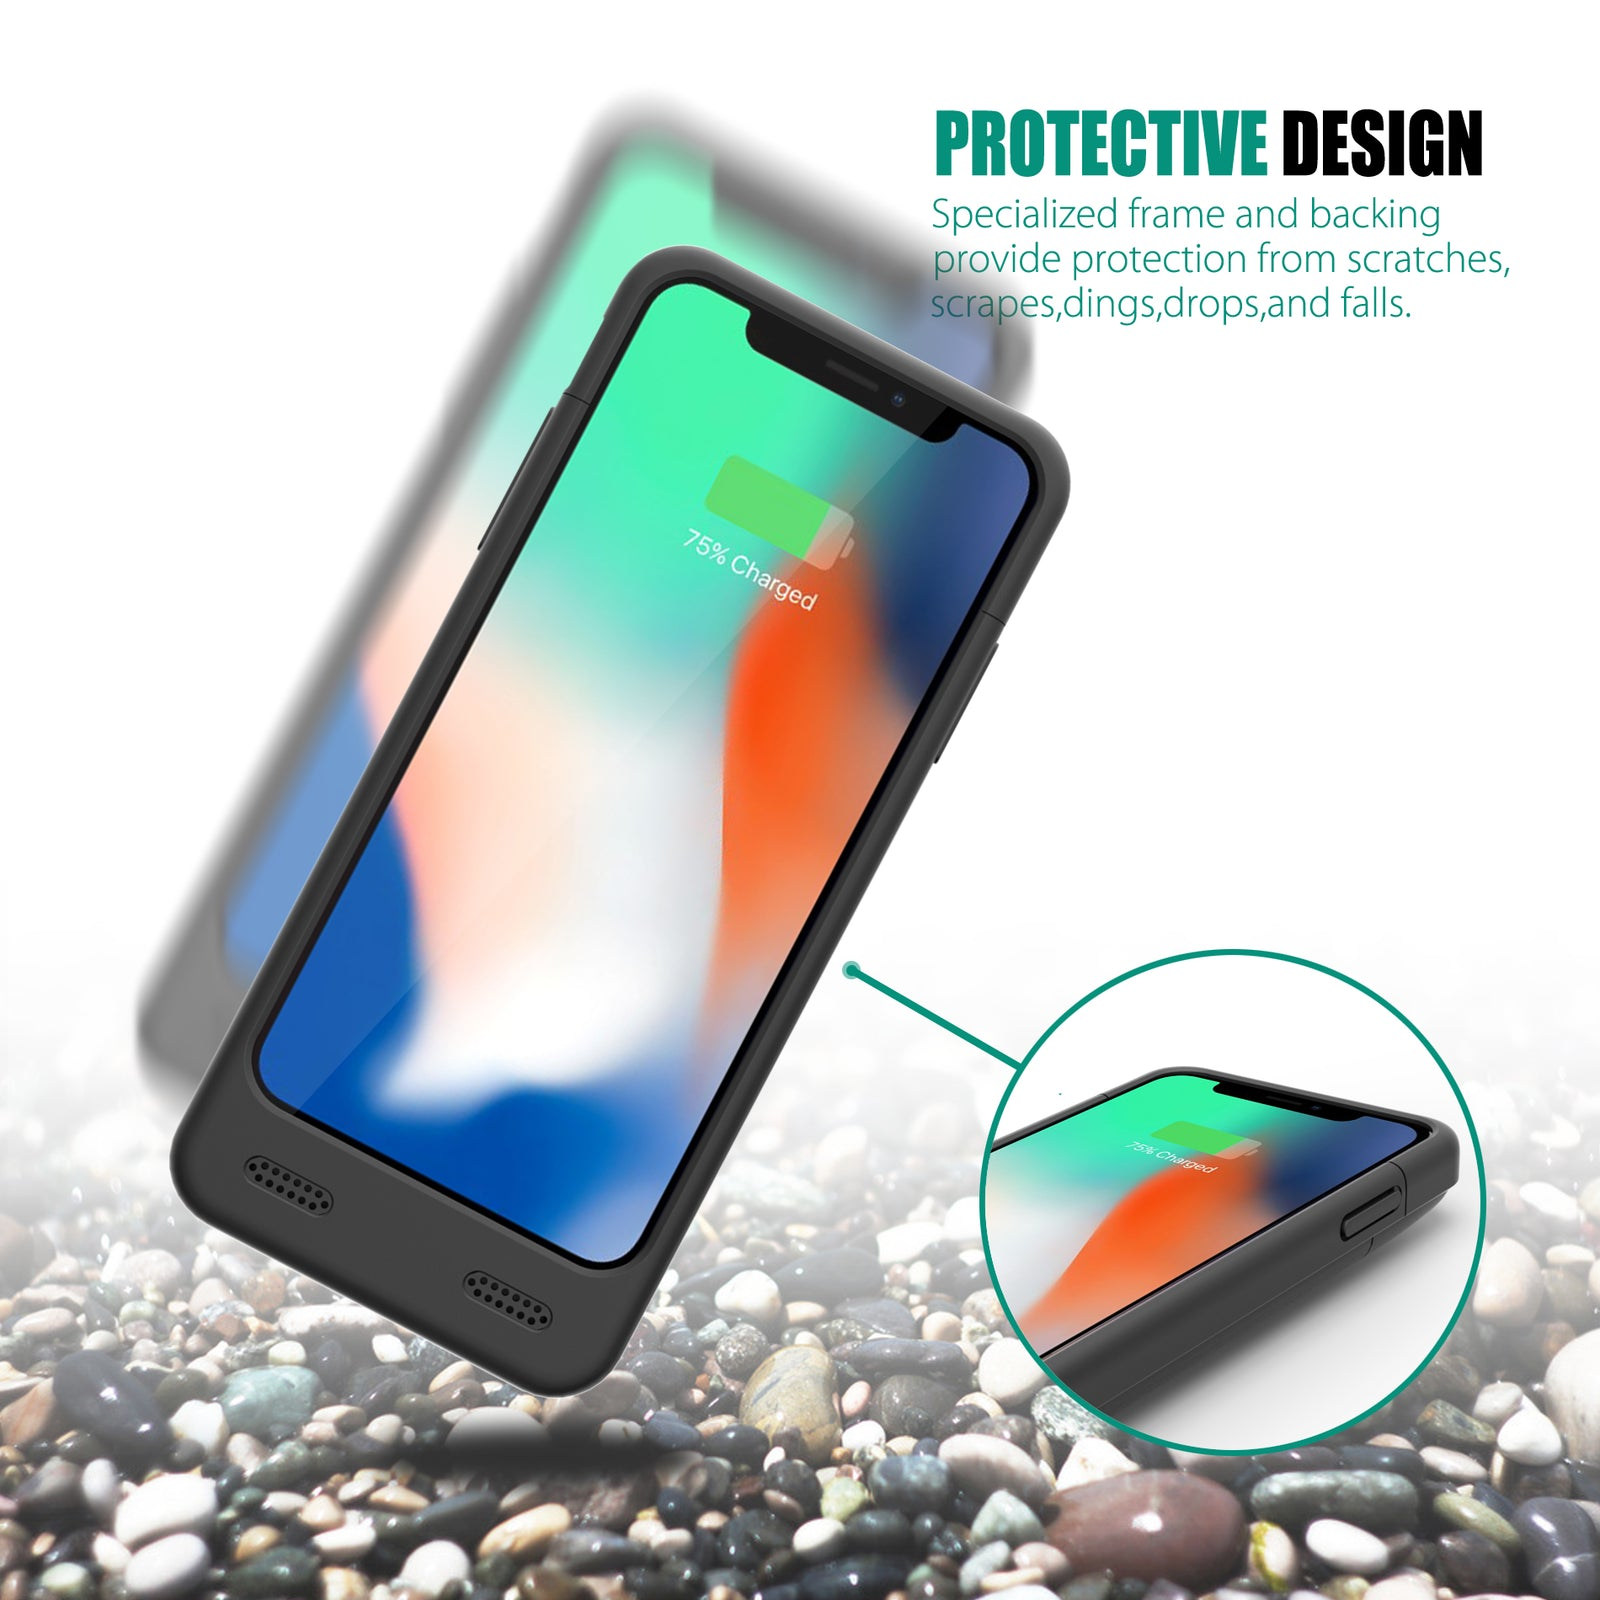 iPhone X 4000mAh Battery Case with Qi Wireless Charging Supported  [Shipping to US Only]